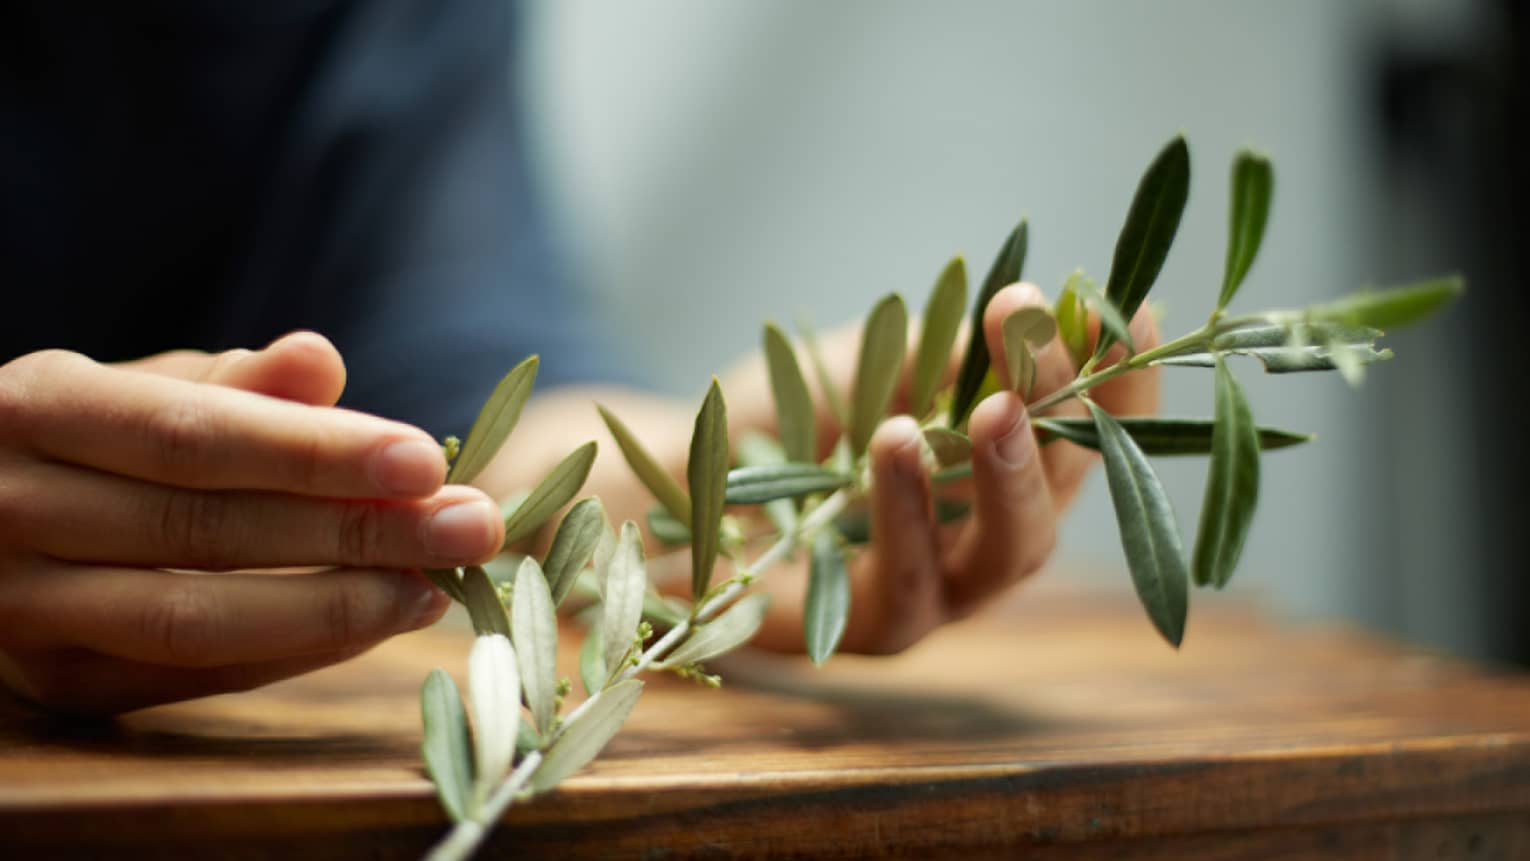 Close-up of hands holding branch with green leaves, herbs